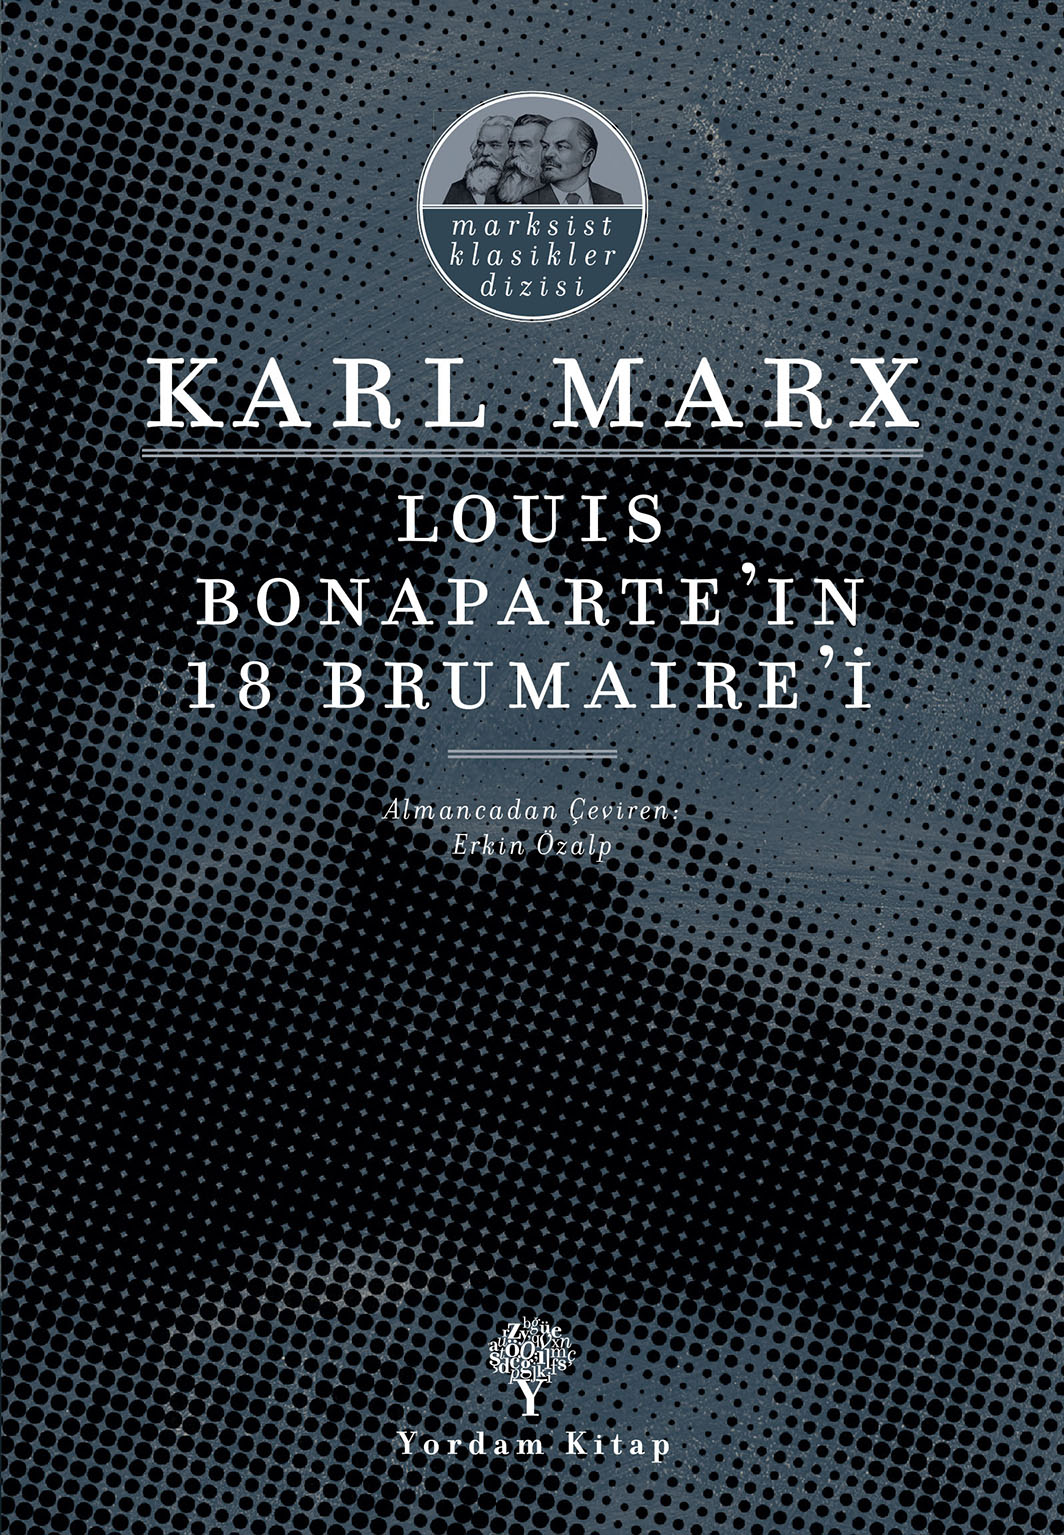 Marx_18_Brumaire.indd